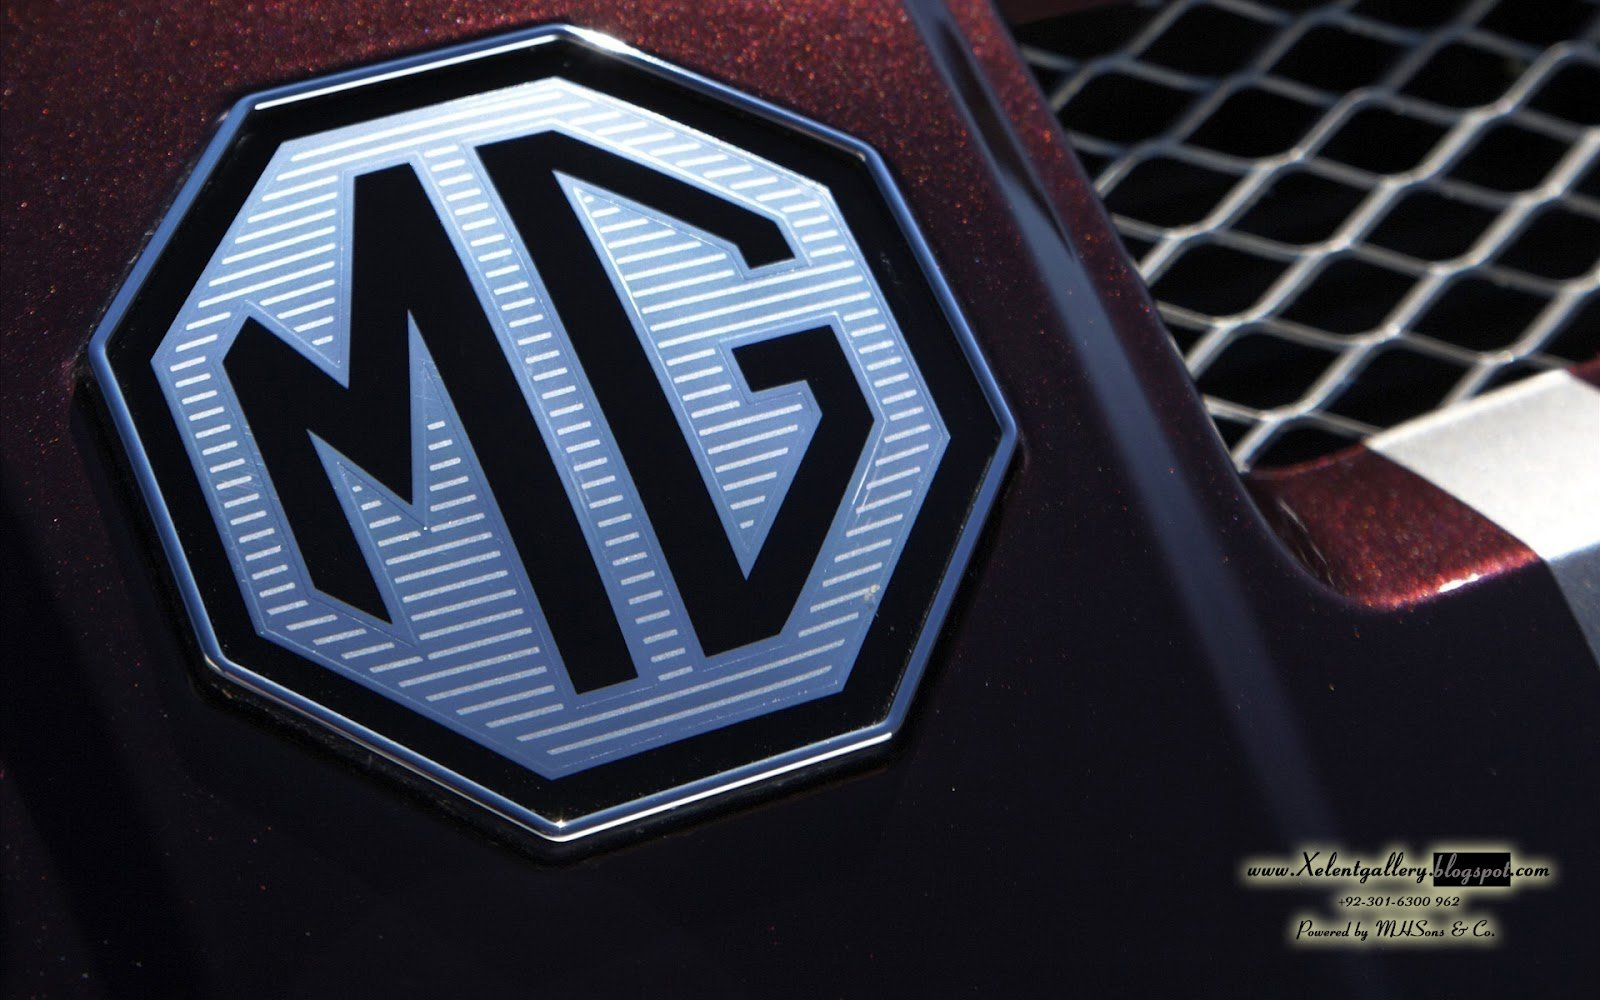 Latest Download Mg Car Wallpaper Pack Hd 1920X1200 Xelent Gallery Free Download